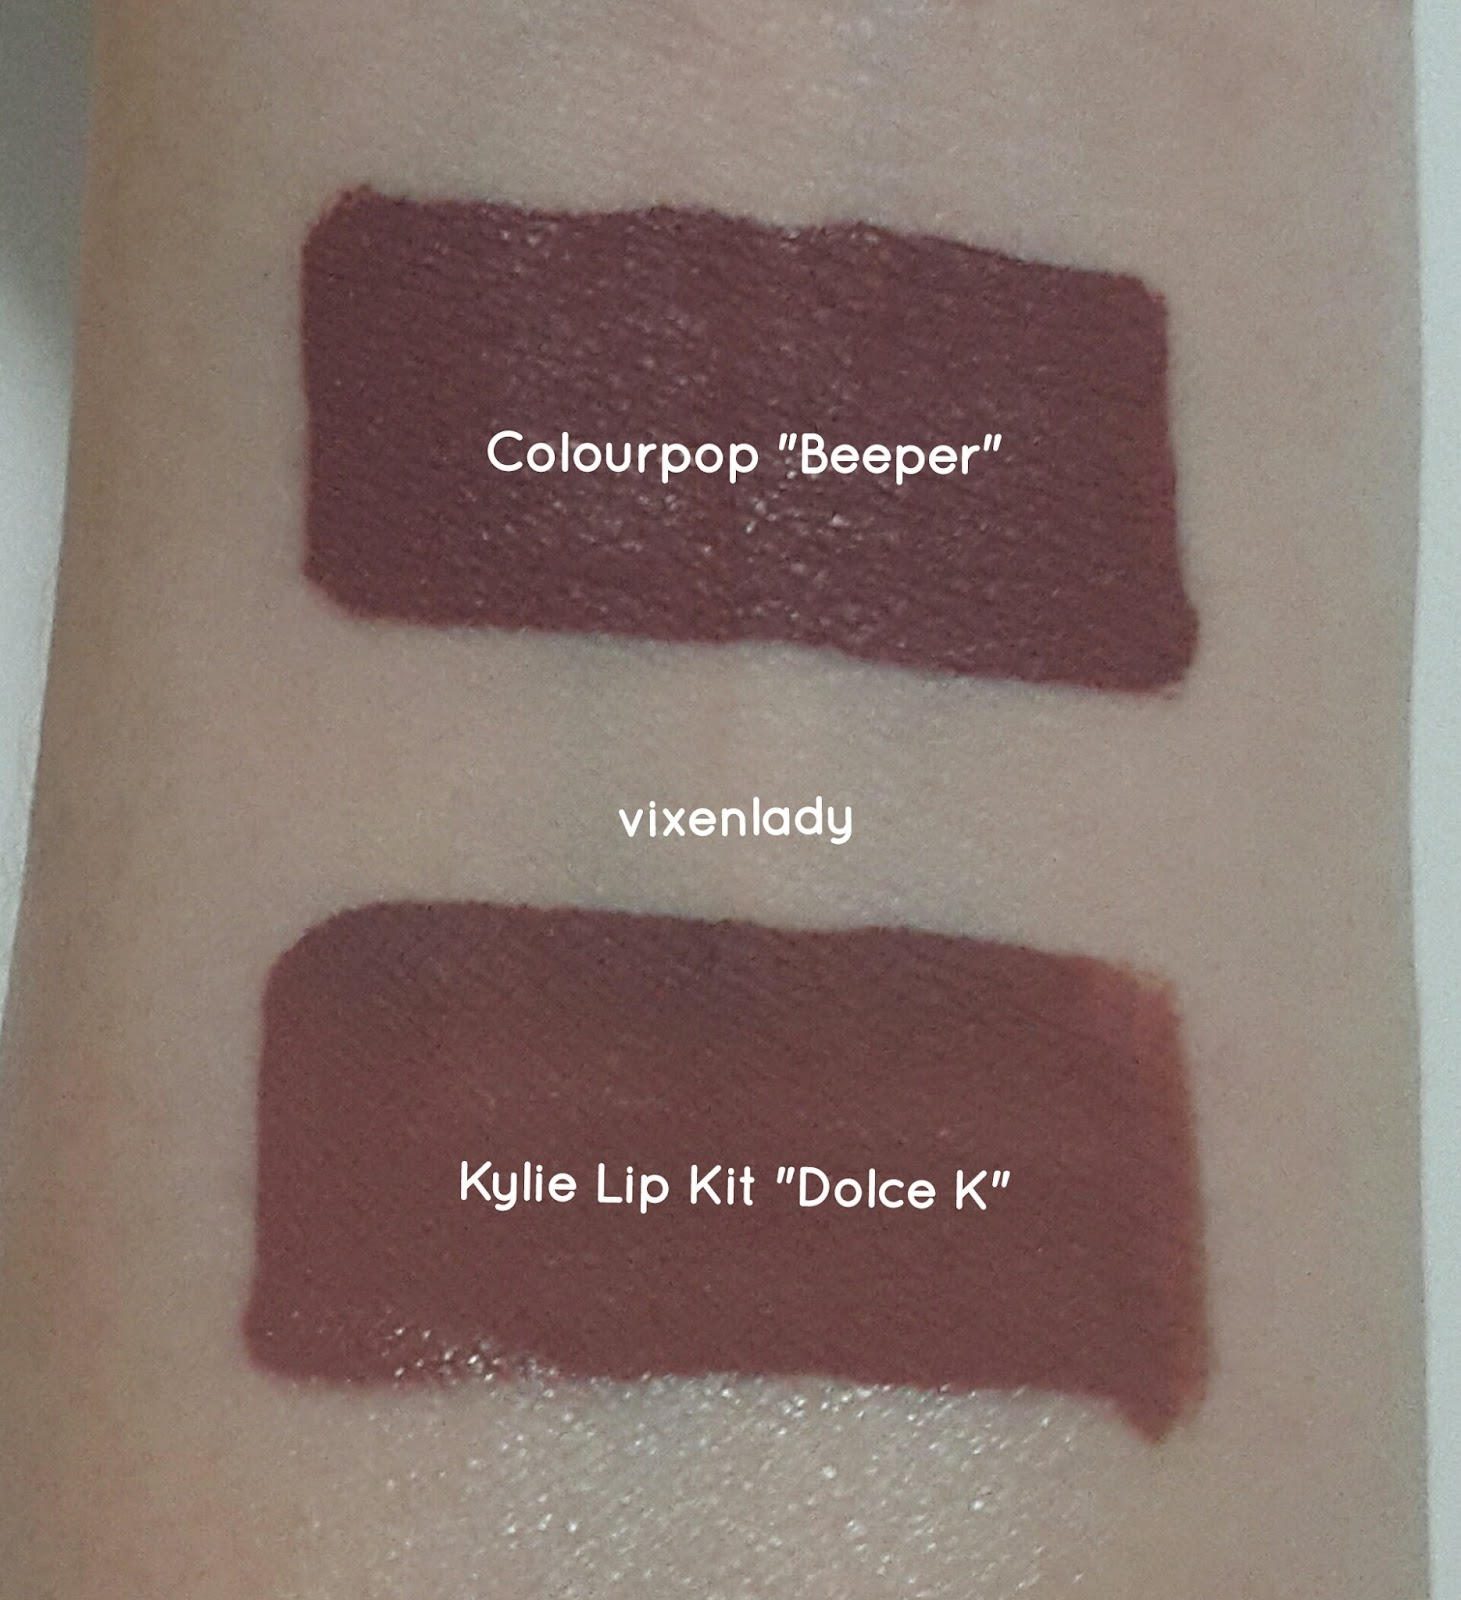 Kylie Lipkit Dolce K Review Swatch Dupe